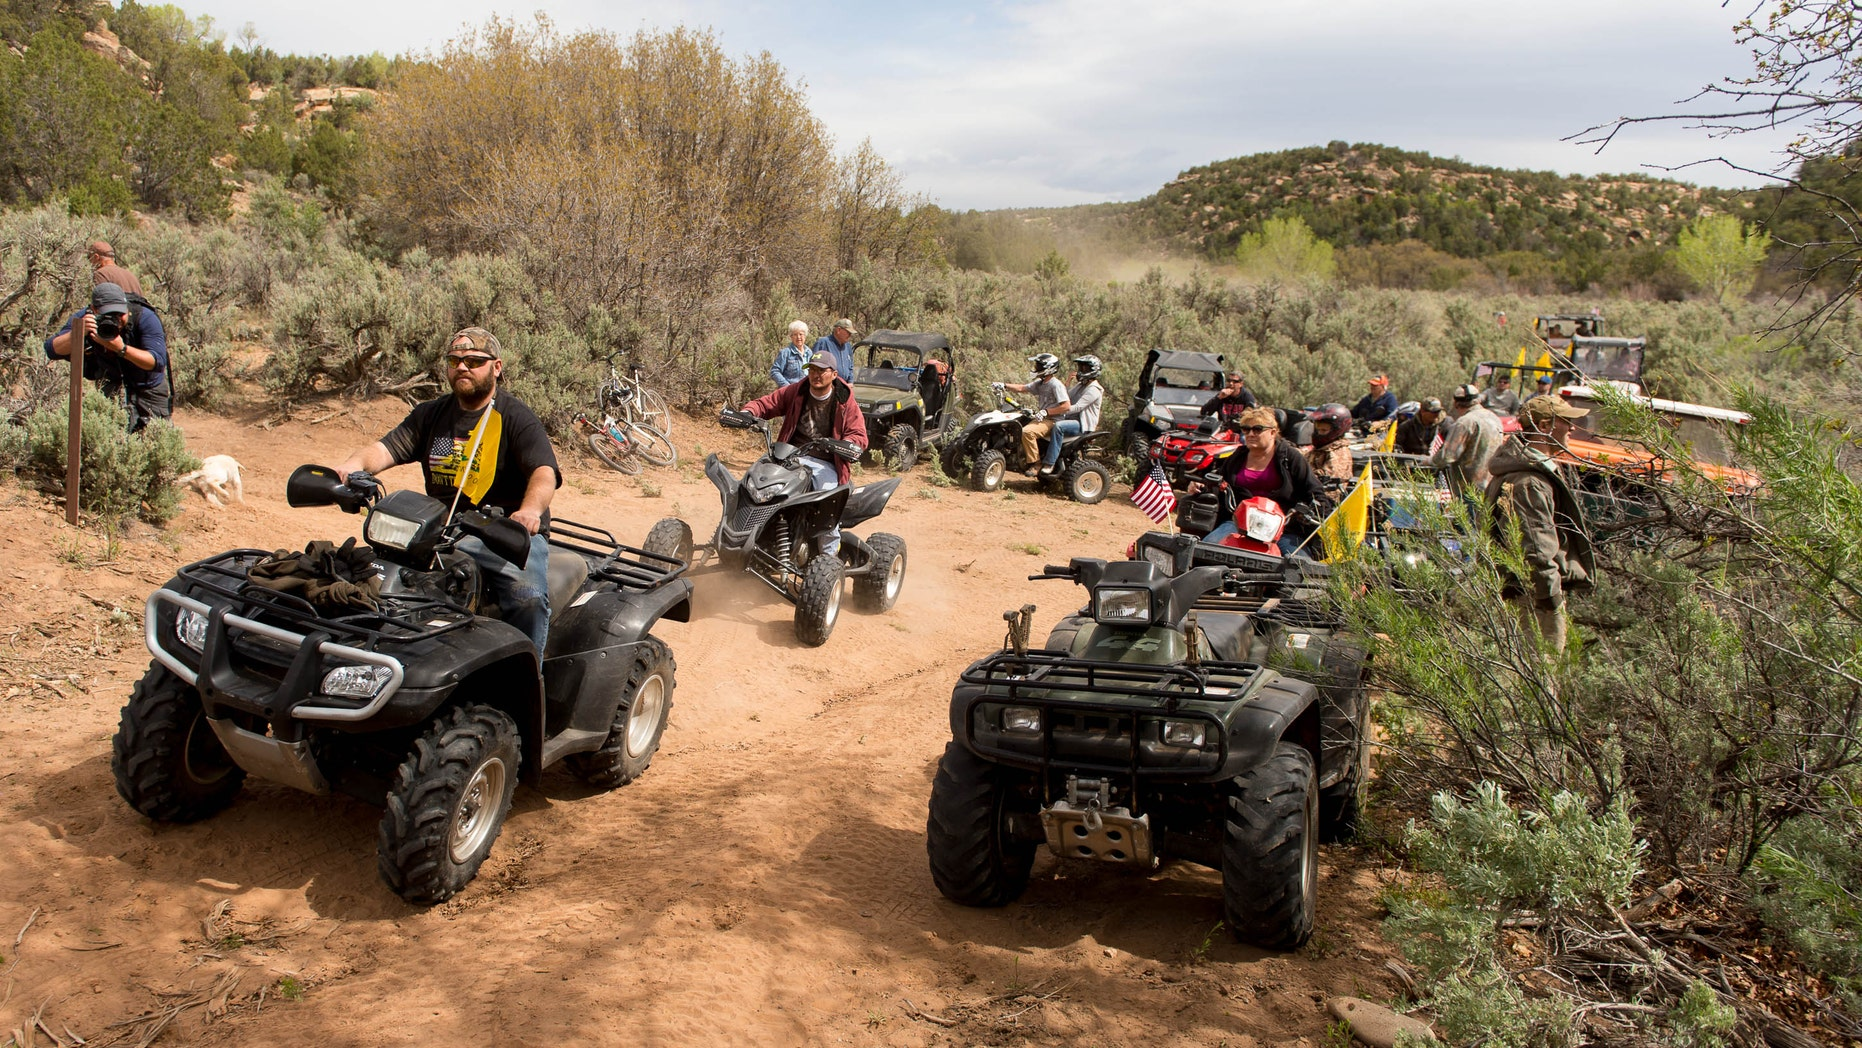 May 10, 2014: ATV riders cross into a restricted area of Recapture Canyon, north of Blanding, Utah, in a protest against what demonstrators call the federal government's overreaching control of public lands.